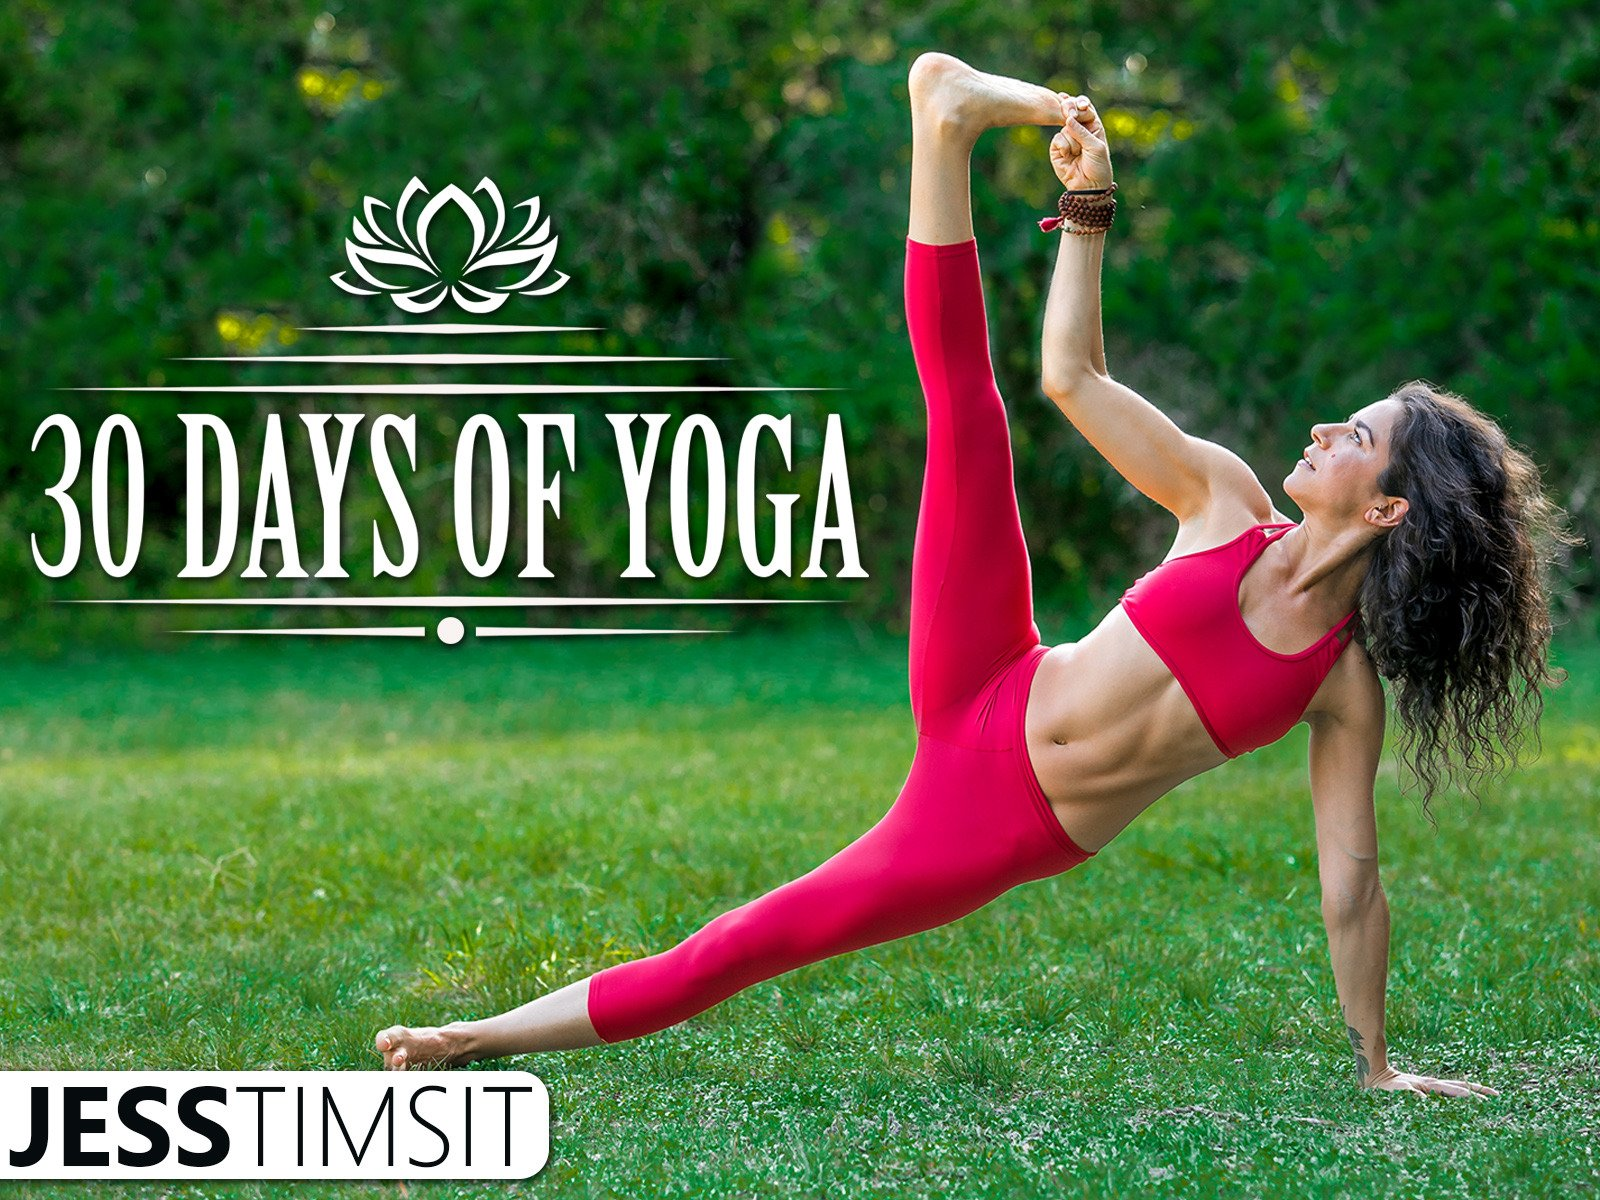 30 Days of Yoga - Season 1